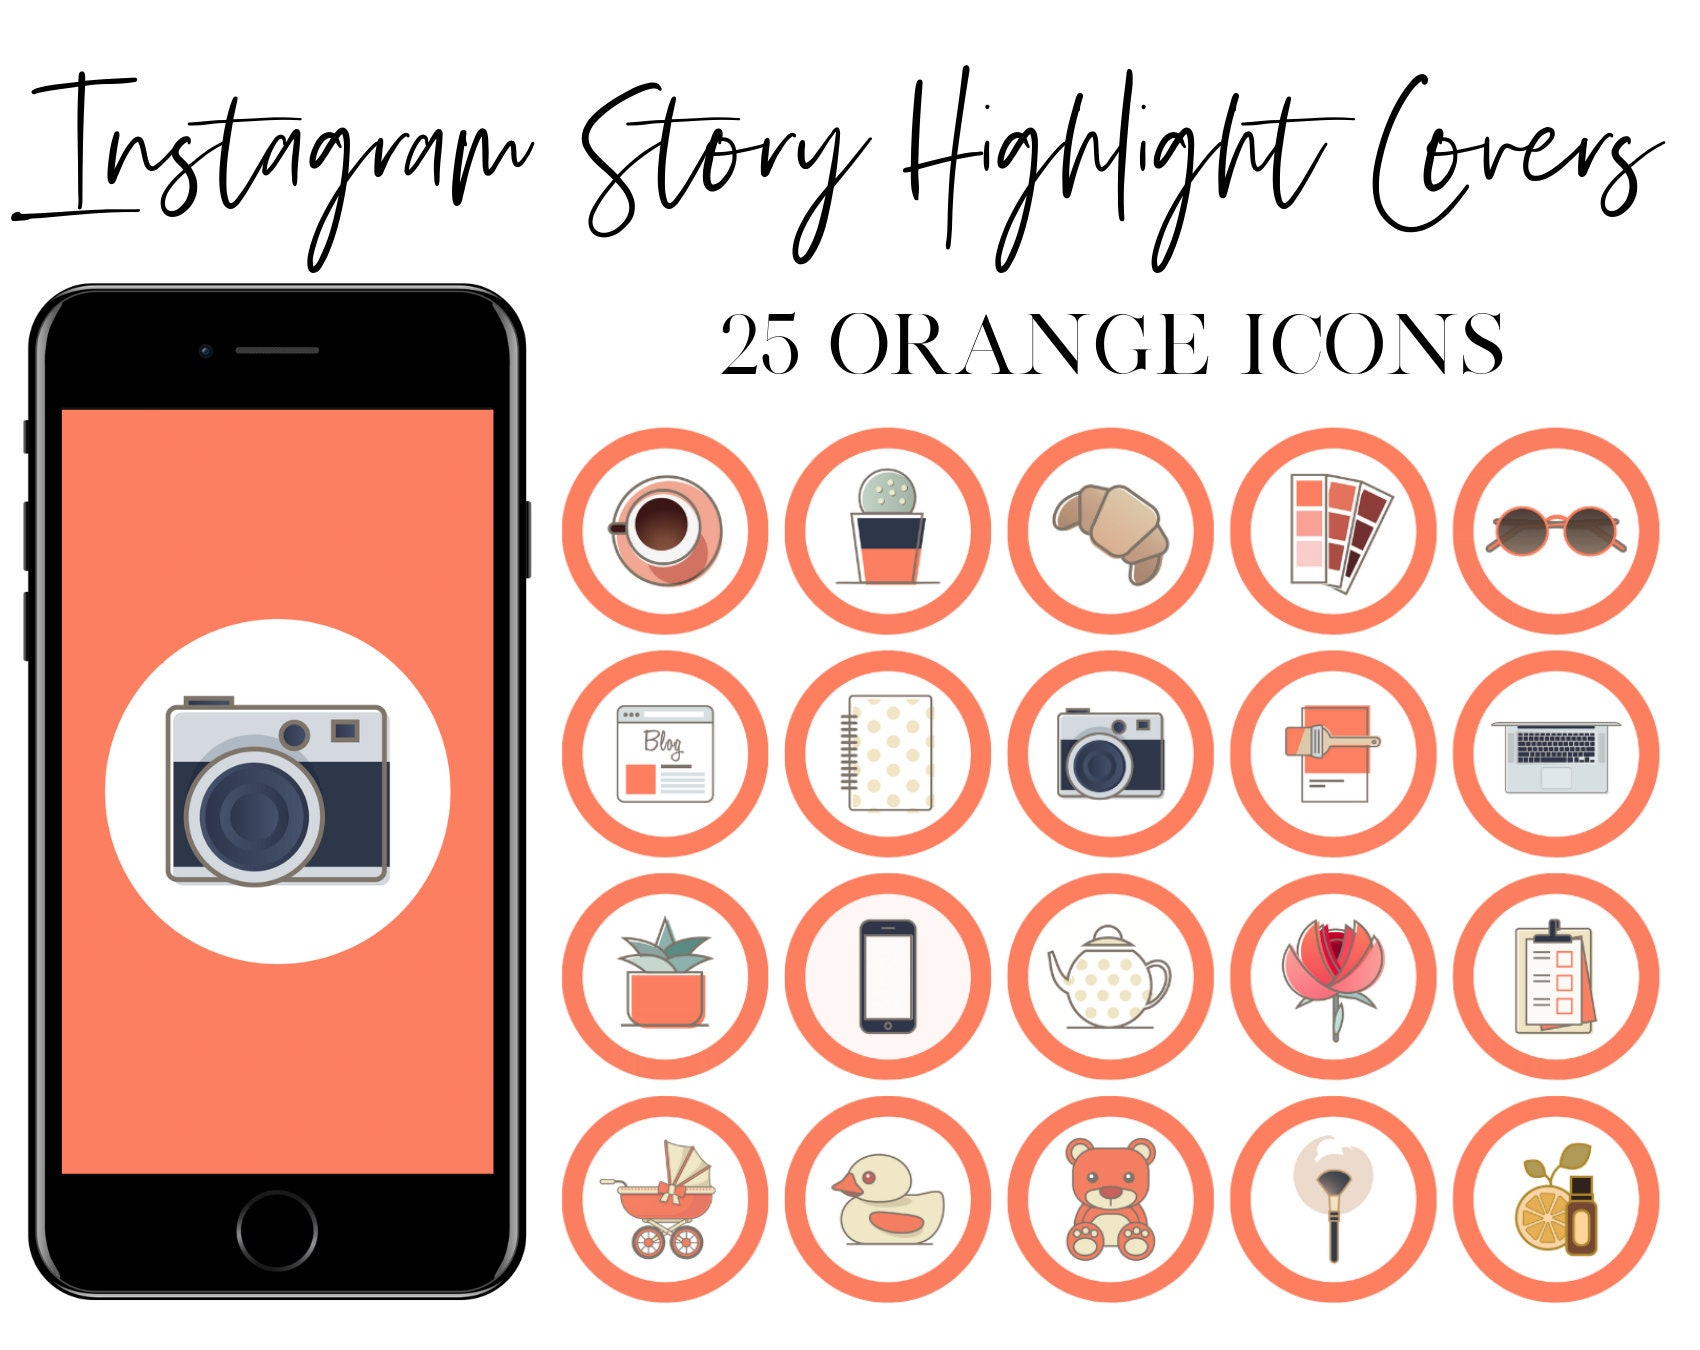 Instagram Story Highlight Covers Orange Icons